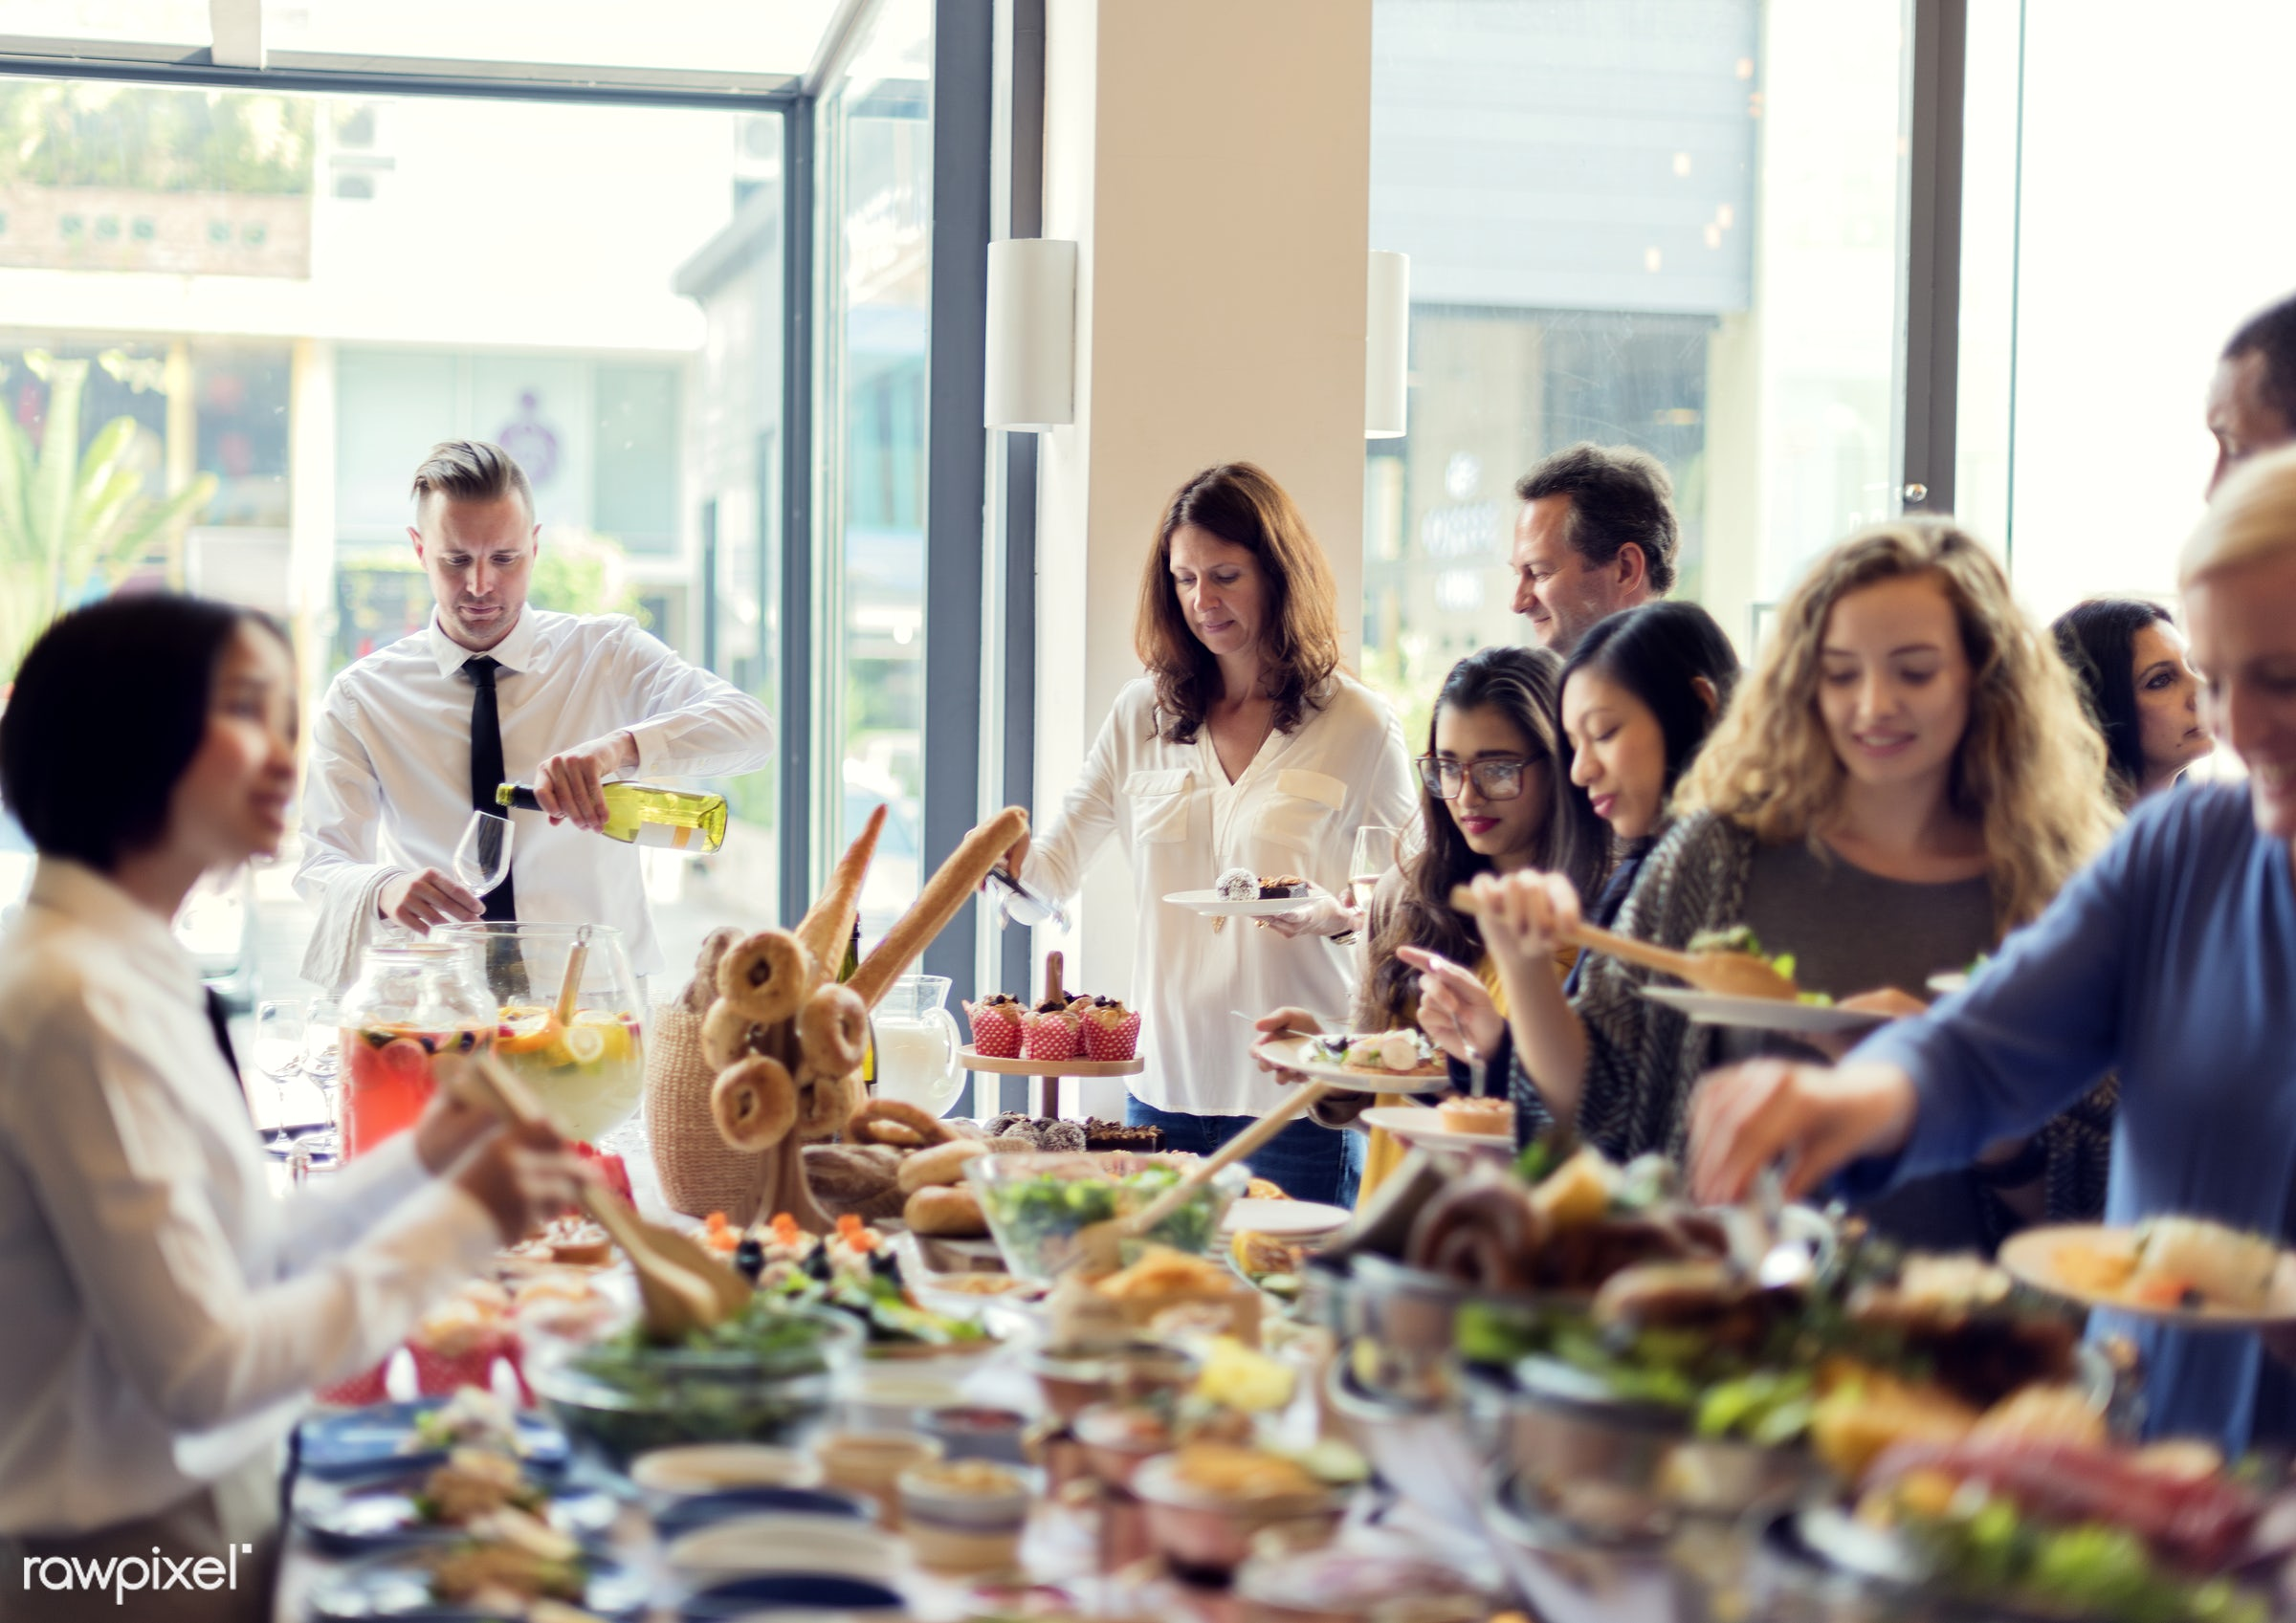 buffet, anniversary, birthday party, cafe, casual, catering, celebrate, celebration, community, companionship, connection,...